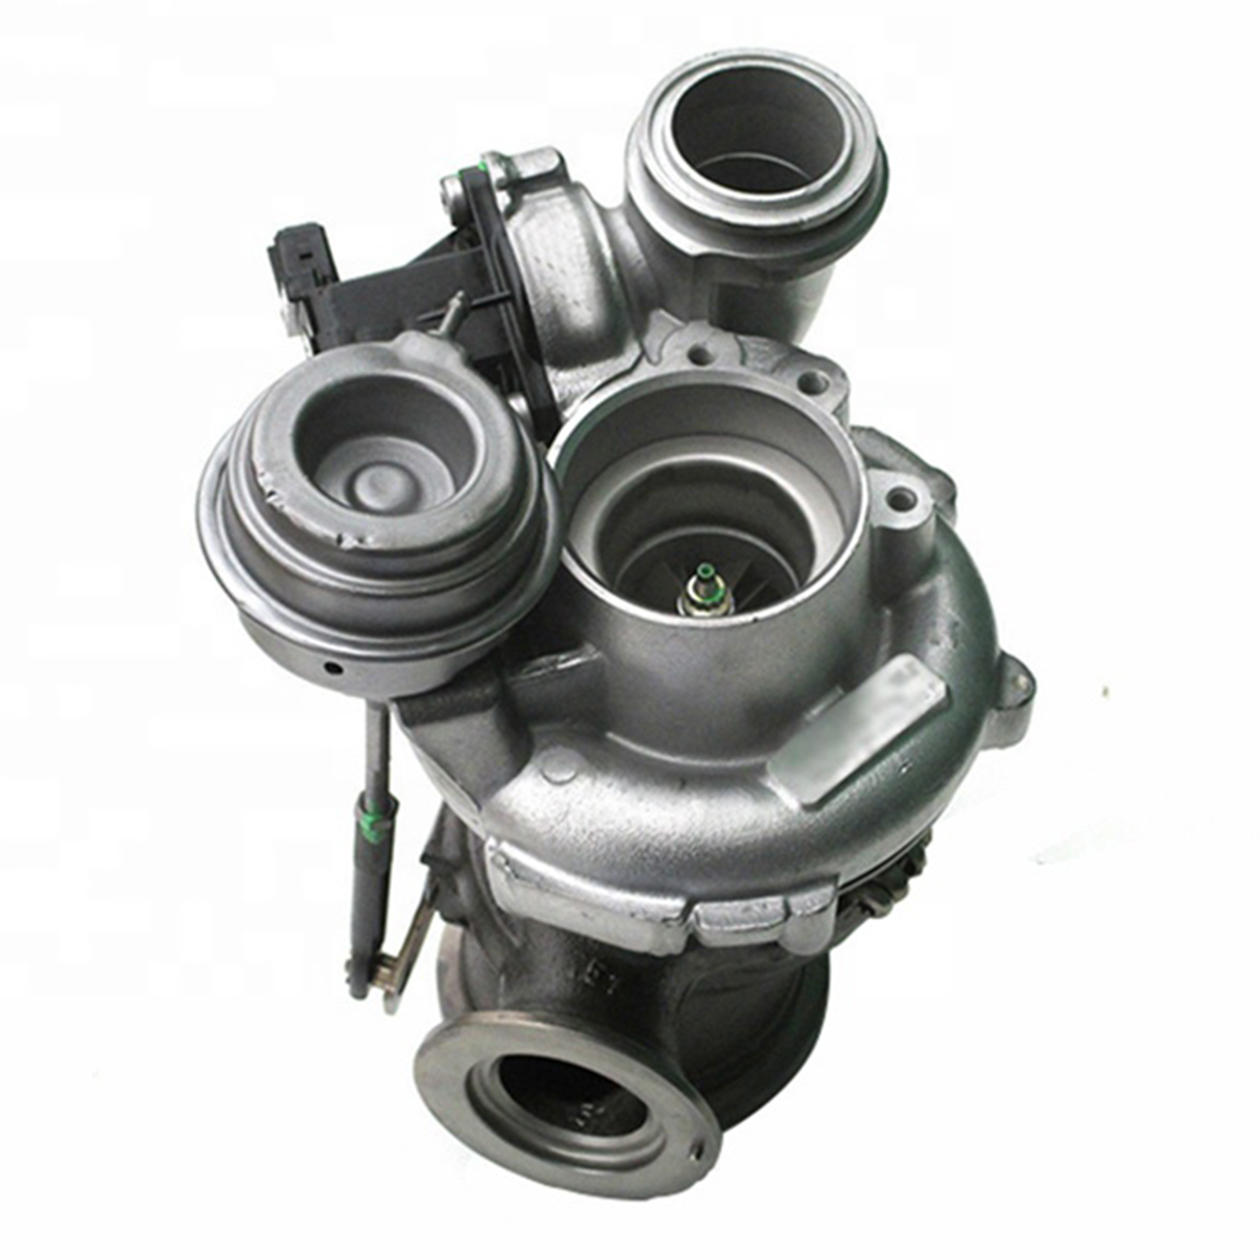 N63 Twin Turbo MGT2256S Turbocharger 769155-0012 769155-0015 4571543A03 for BMW